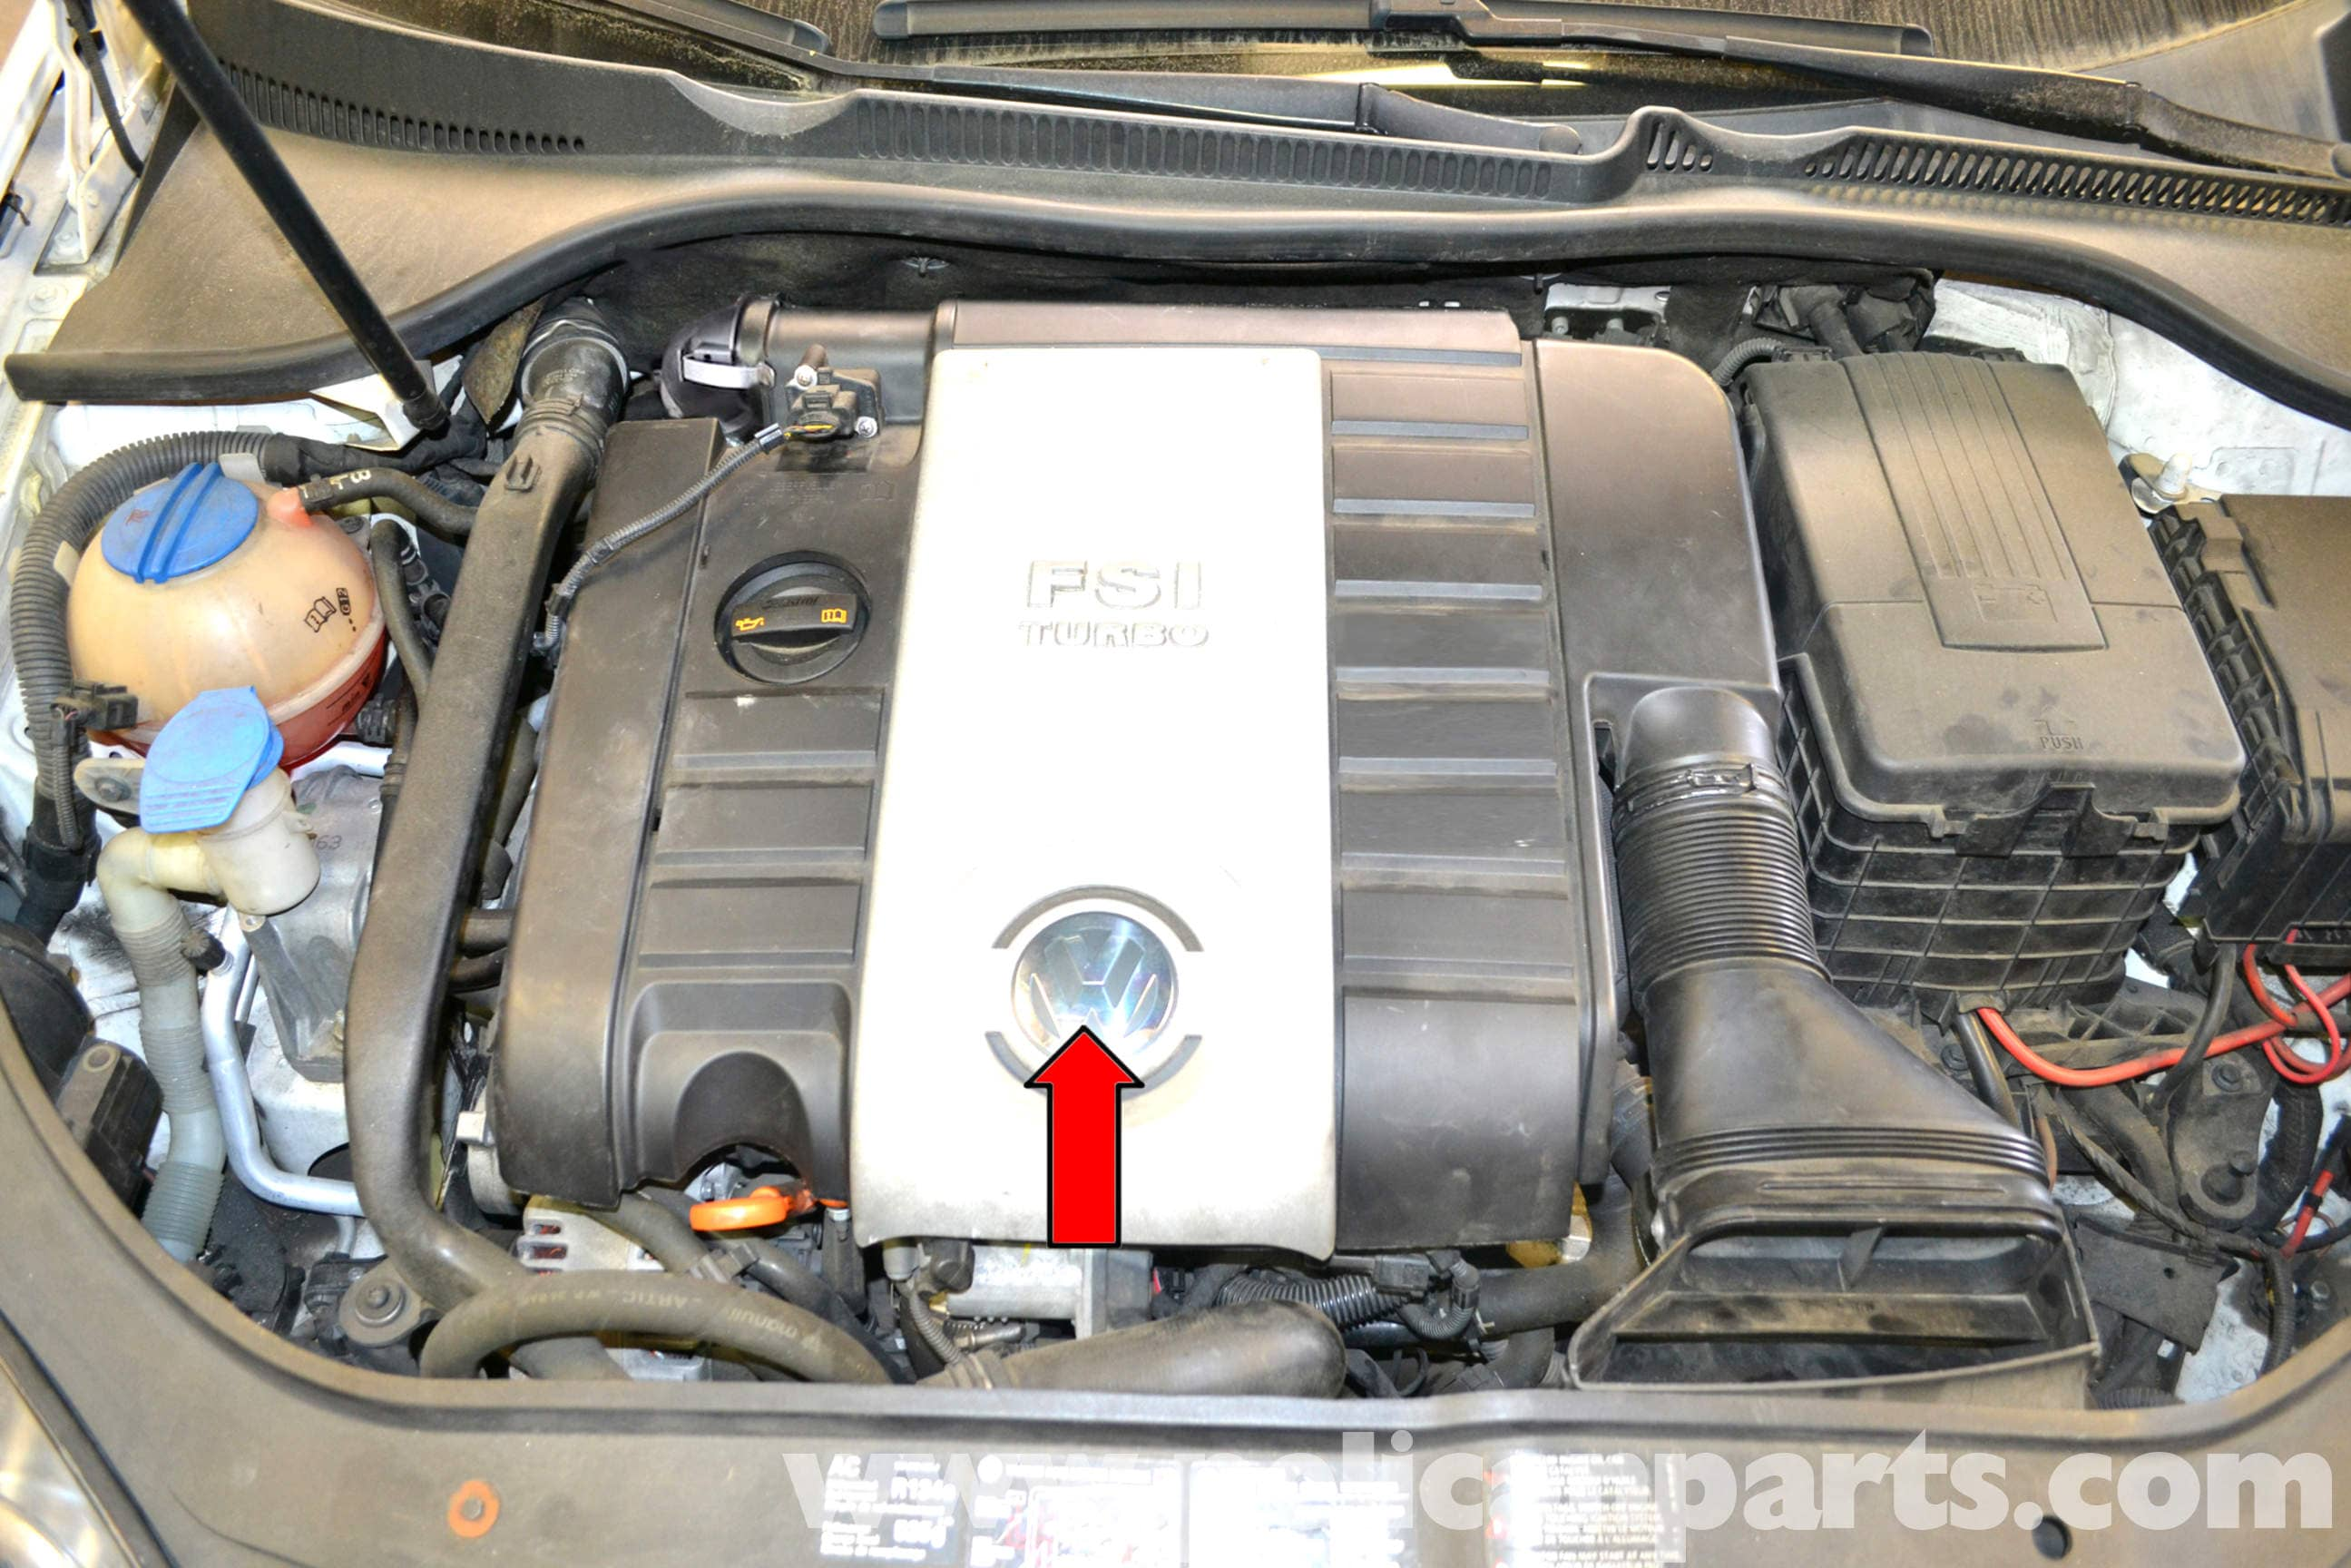 volkswagen golf gti mk v spark plug and coil replacement 2006 2009 rh pelicanparts com VW Engine Wiring Diagram VW 2.0 Turbo Engine Diagram